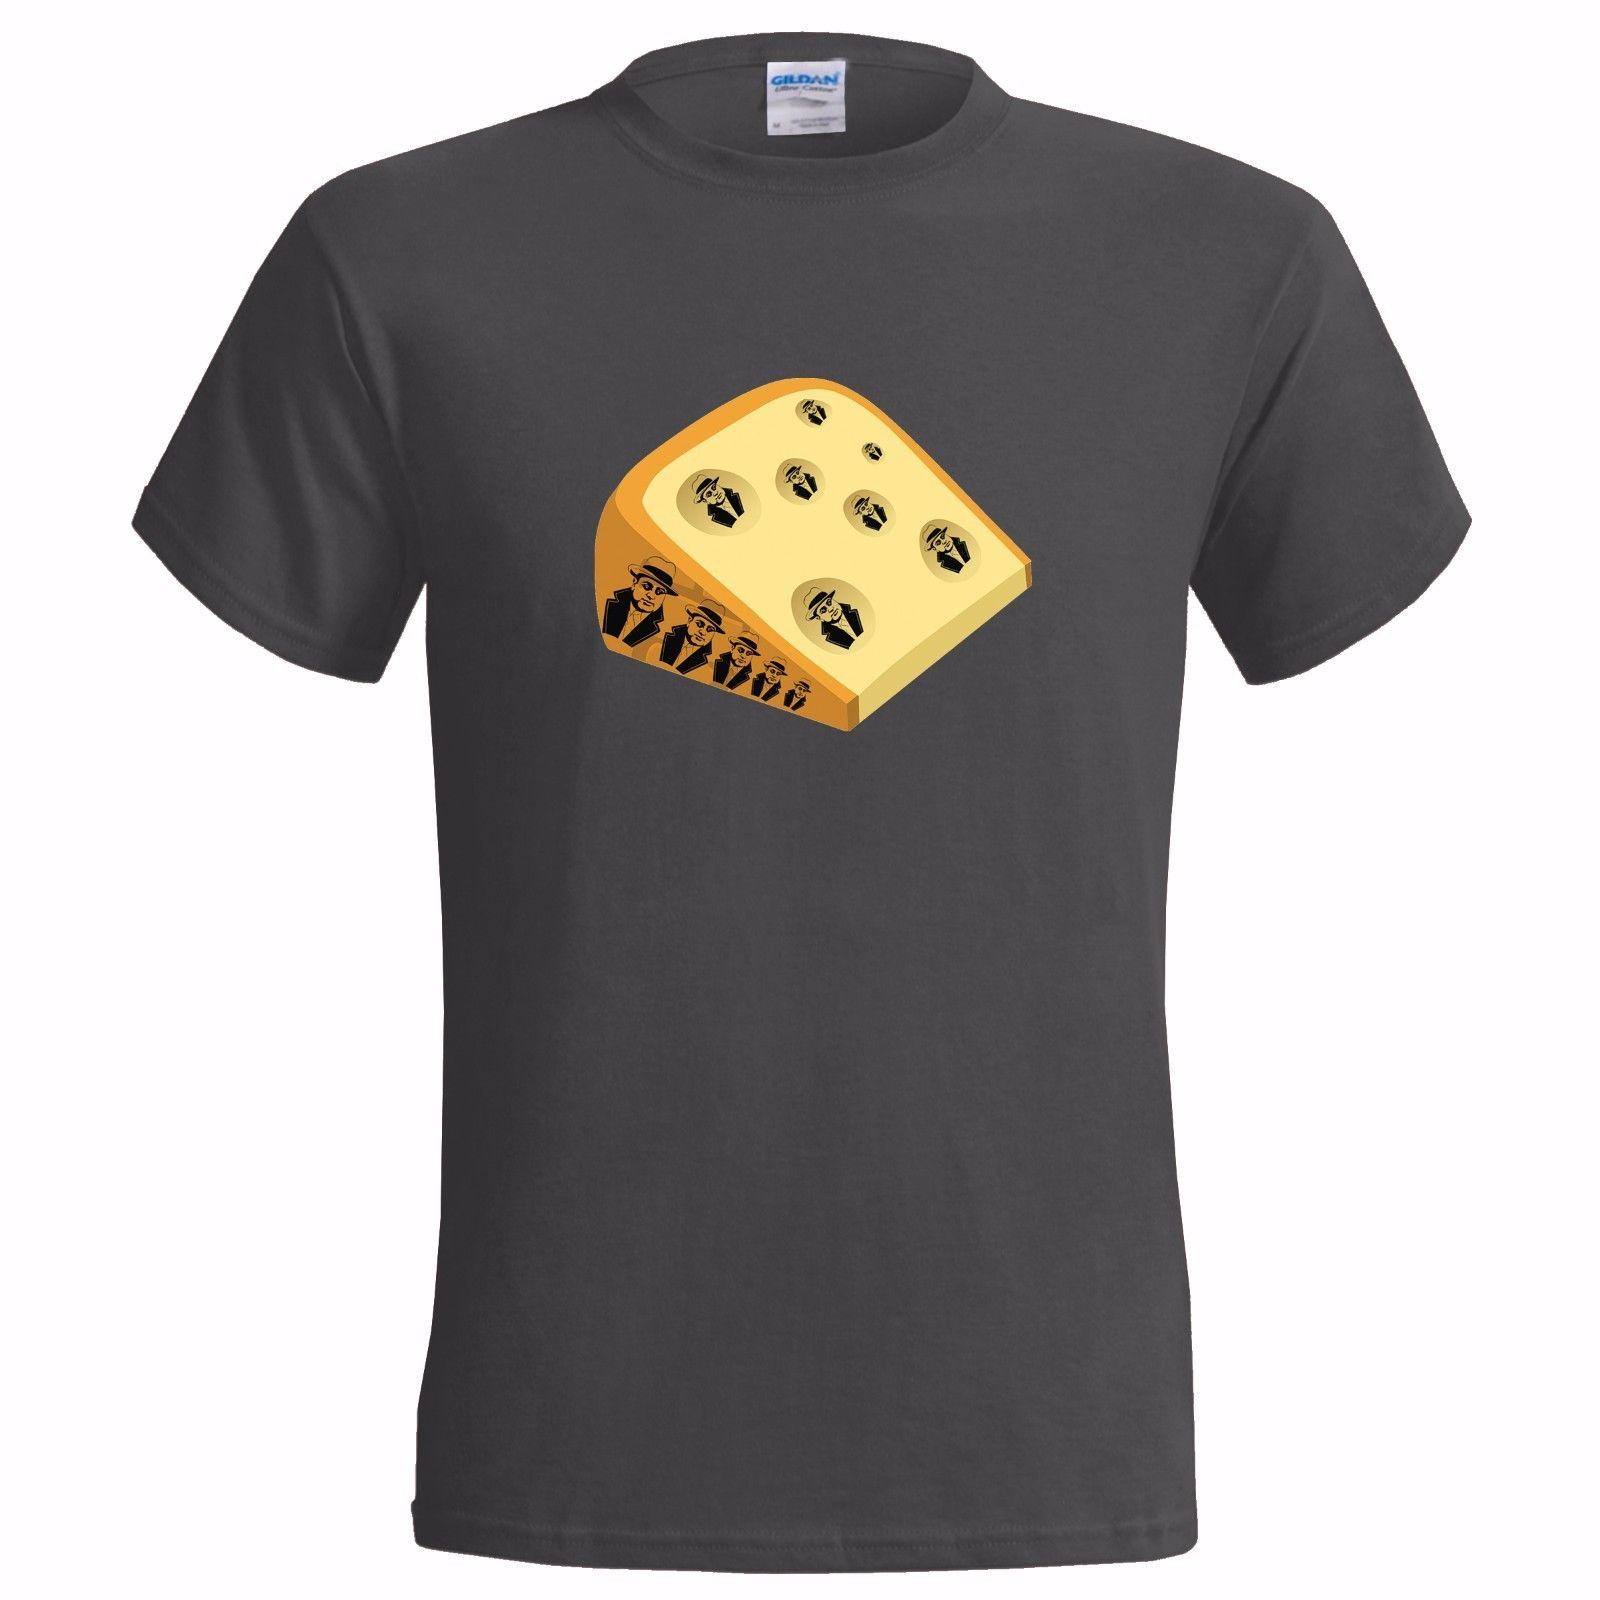 b6ee9a95 MASS CAPONE CHEESE FUNNY PUN MENS T SHIRT BAD JOKE GIFT PRESENT LOVER PUNS  AL Trump Sweat Sporter T Shirt T Shirs T Shirst From Cancup, $16.24|  DHgate.Com